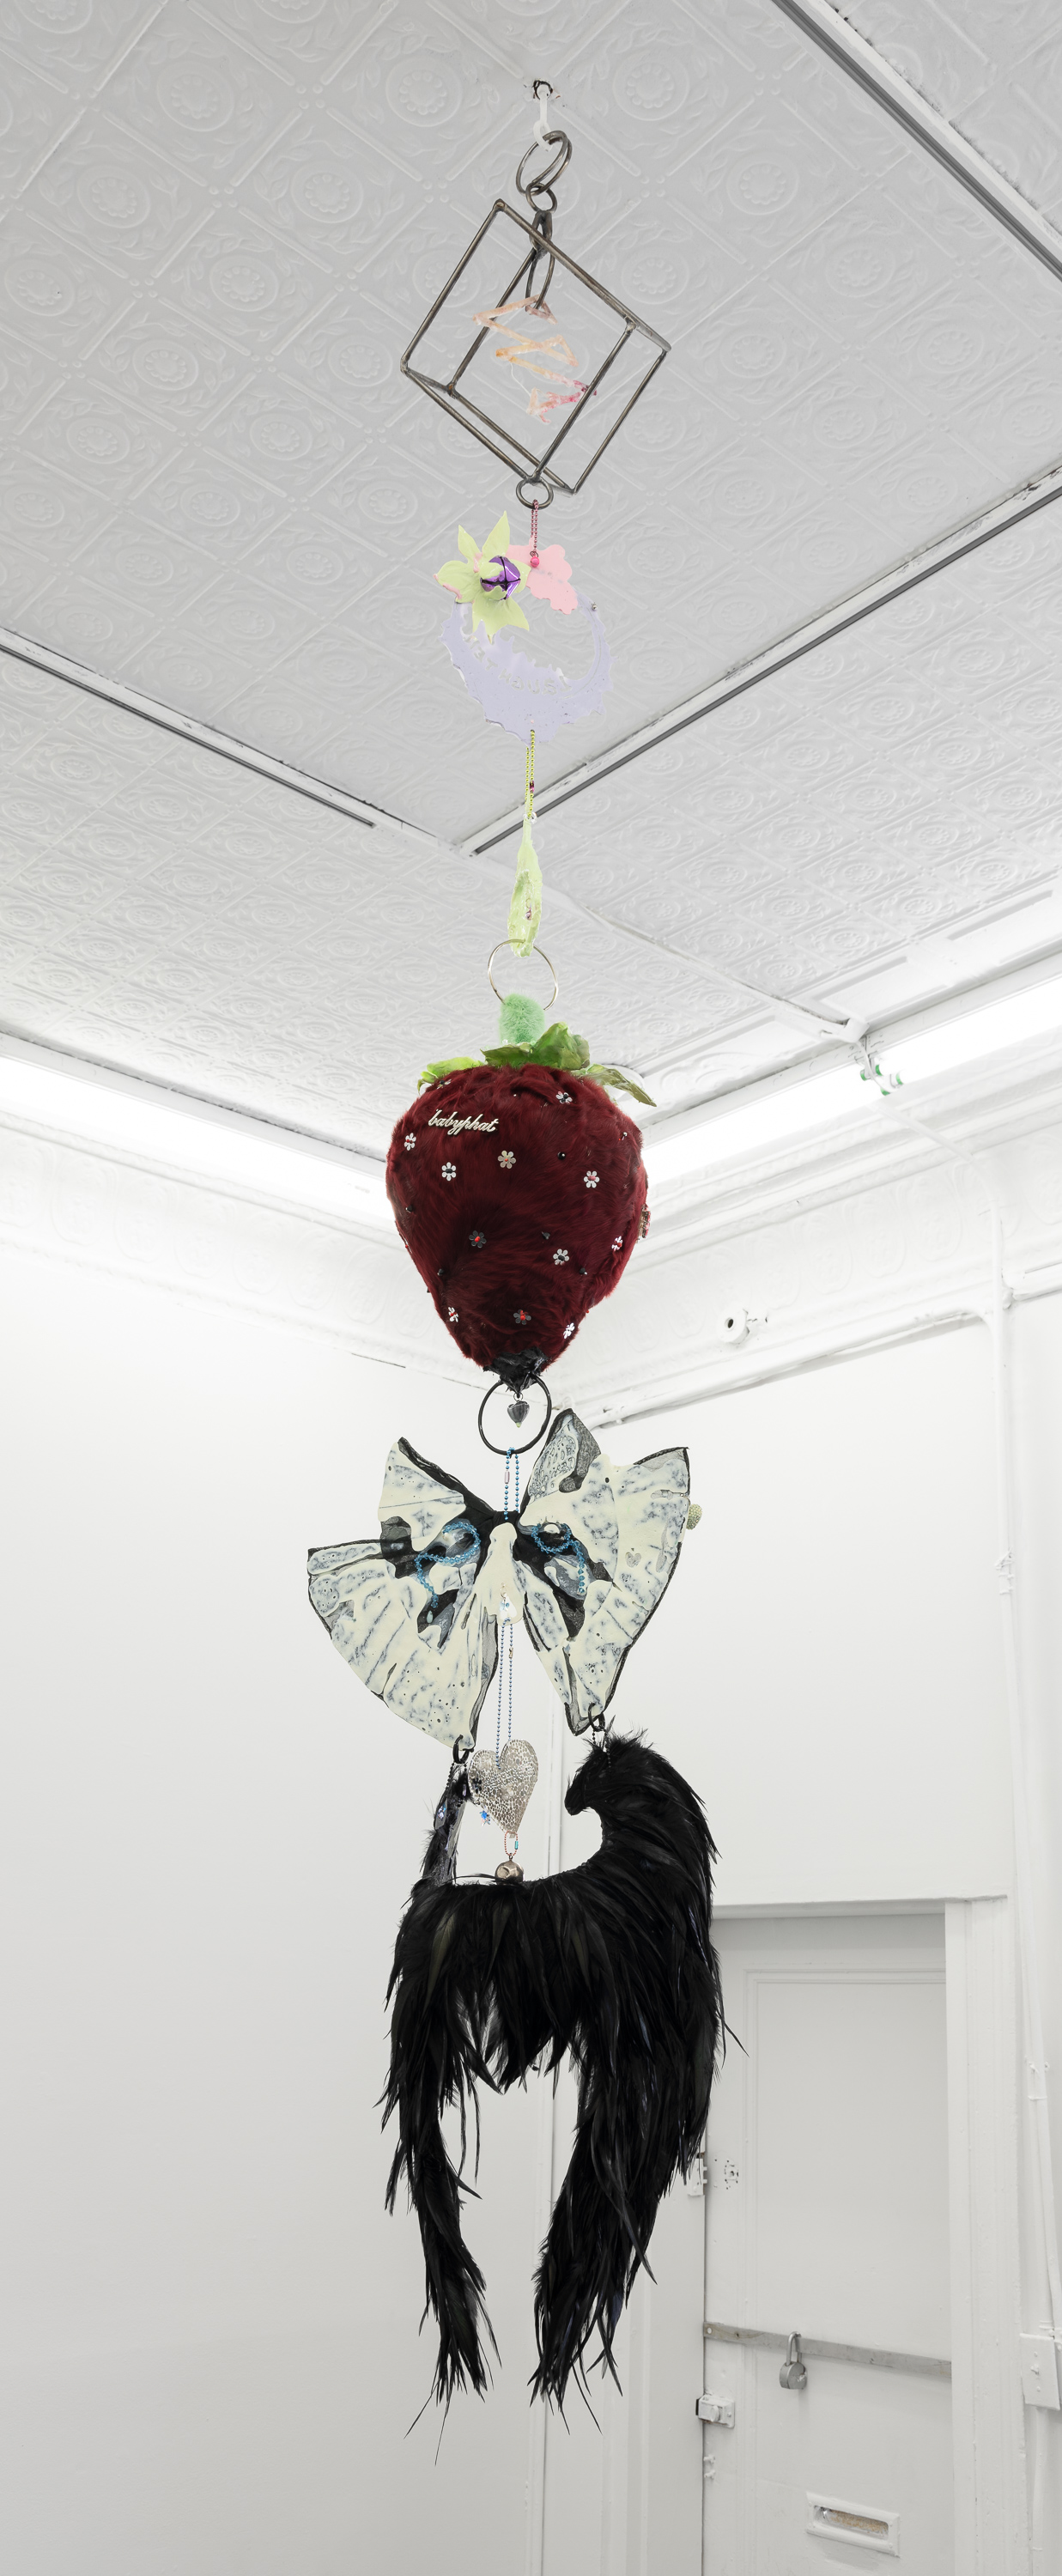 Izabelle New,  Keep Coming Back (patience),  2019 Steel Rod, Fine Silver, Resin, Assorted Hardware, Clover Flowers, Corn Husk Silks,Collected Charms, Rabbit Fur, Cock Feathers, Swarovski Crystals. A special thank you to Otis Denner-Kenny